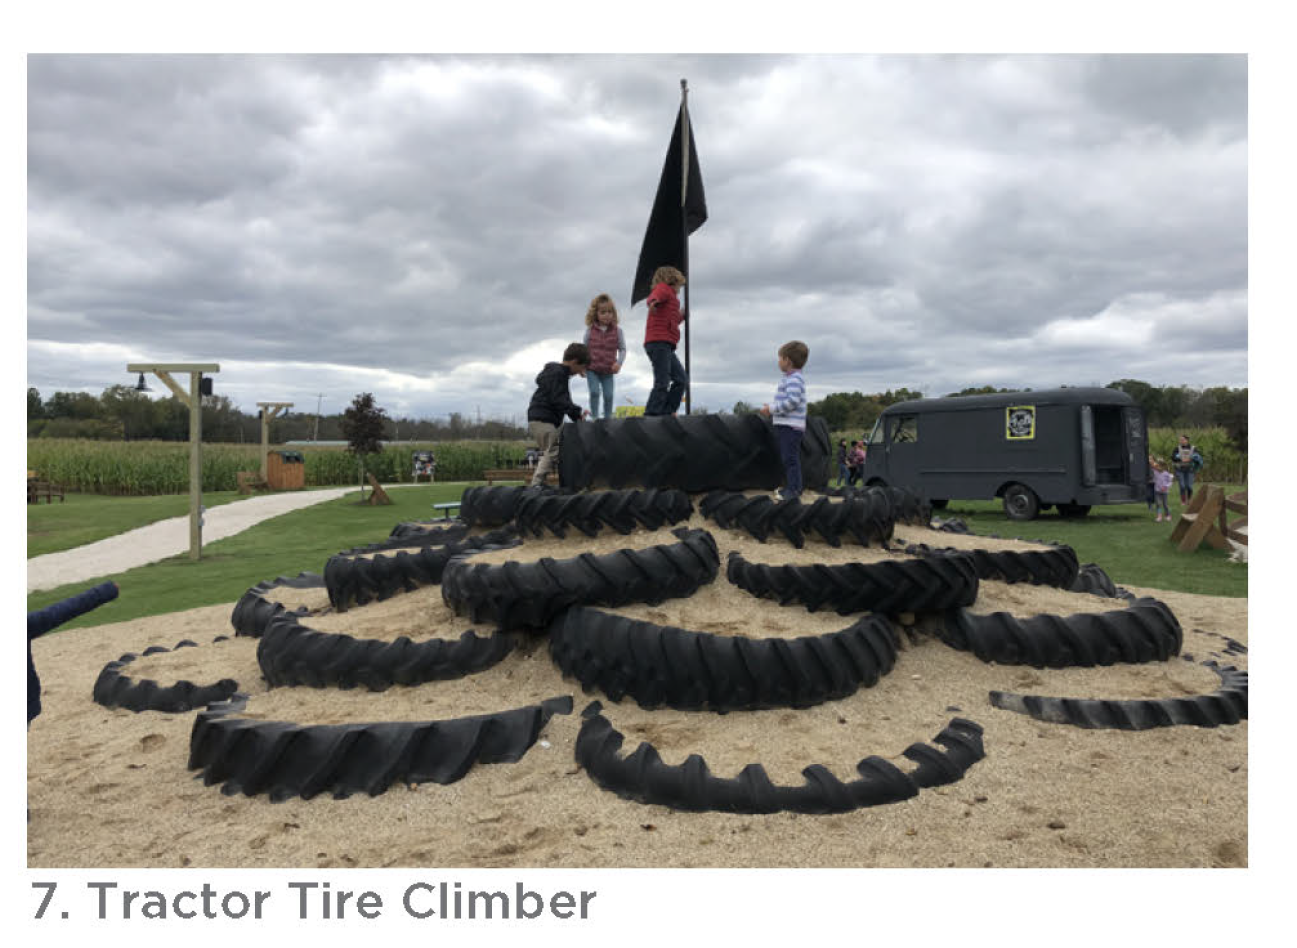 Tractor Tire Climber